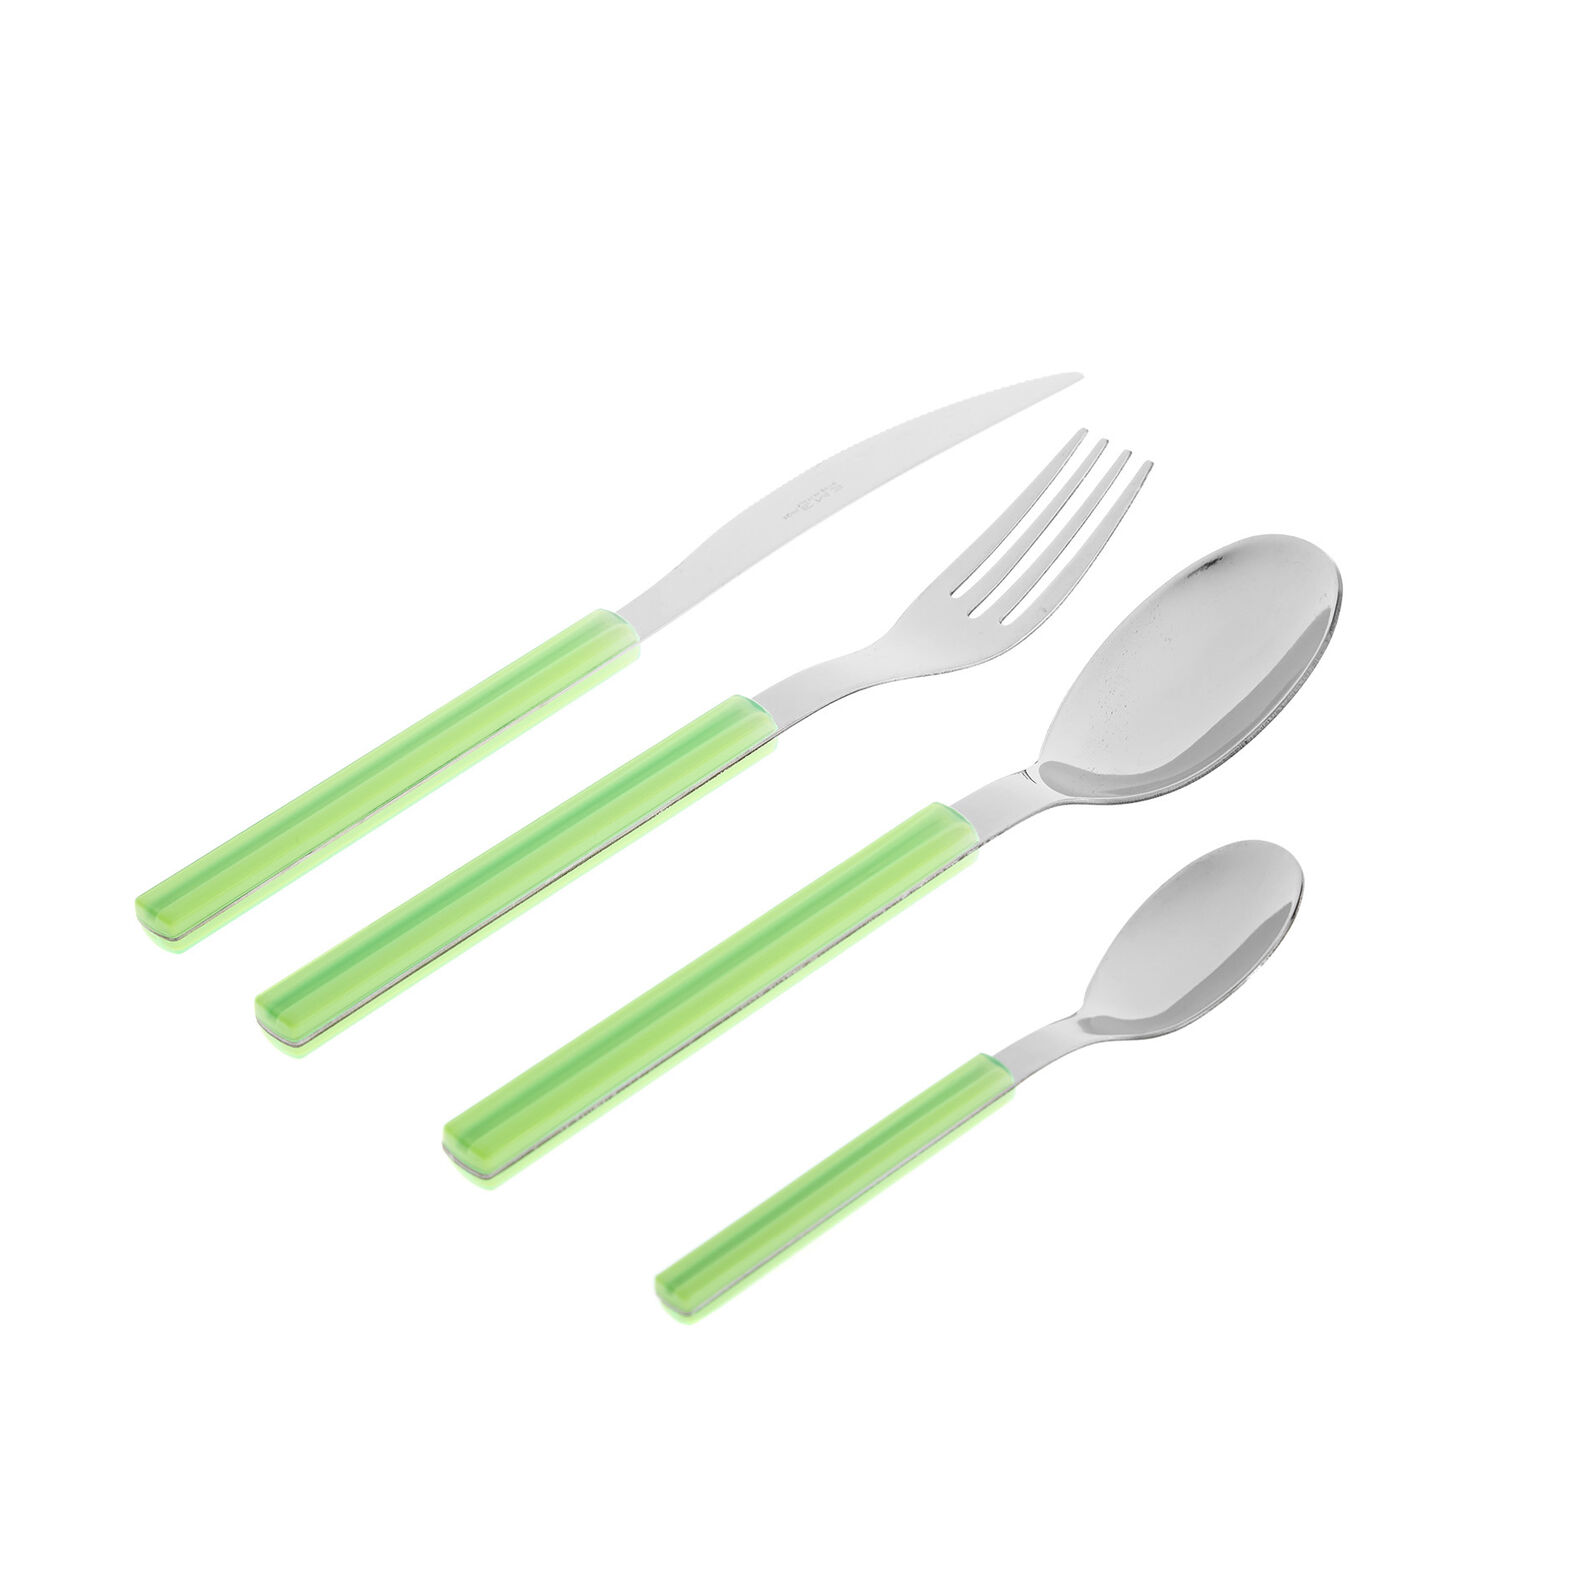 24-piece cutlery set in steel and plastic